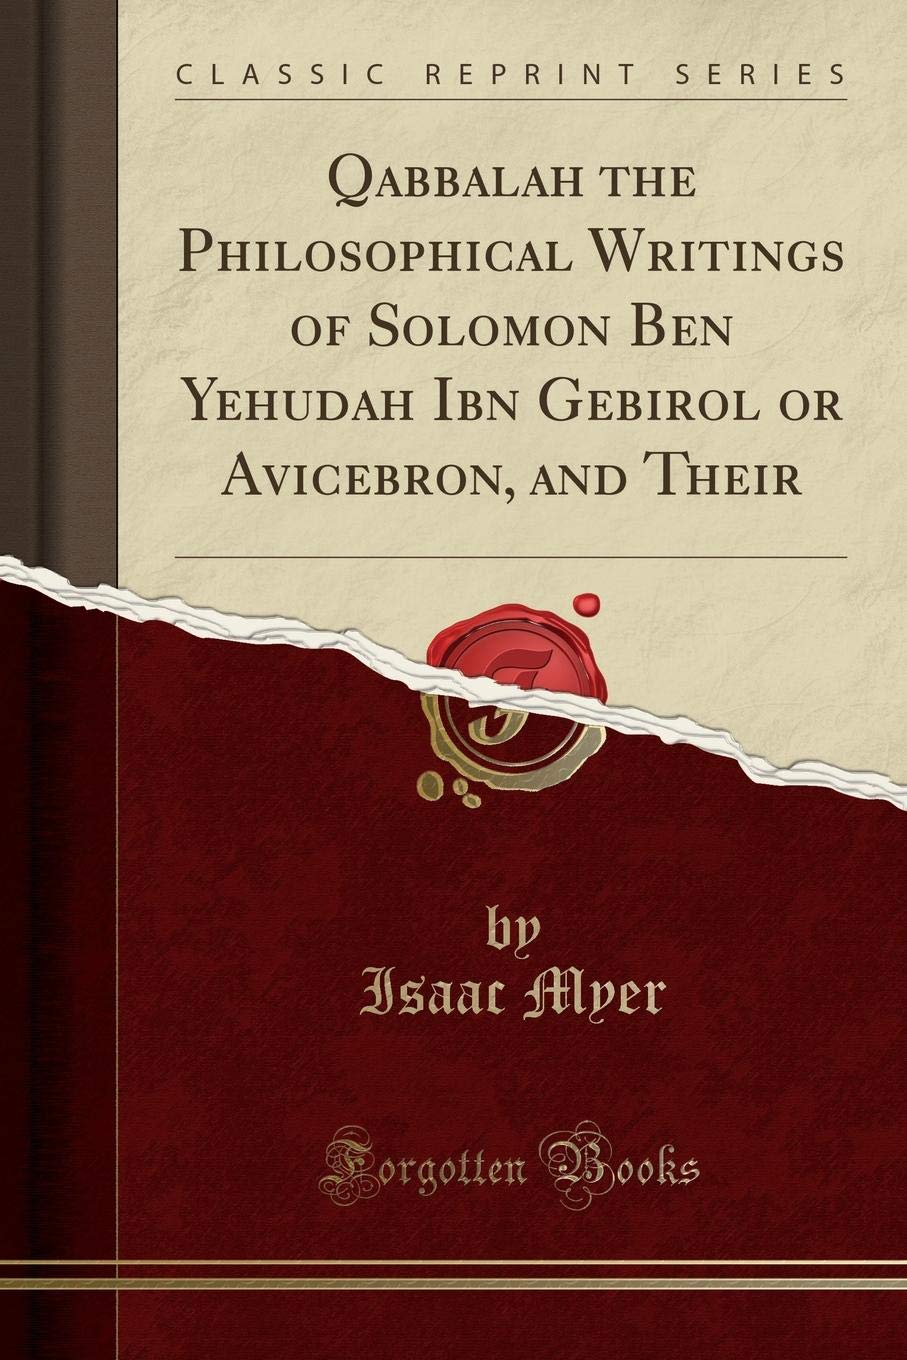 Download Qabbalah the Philosophical Writings of Solomon Ben Yehudah Ibn Gebirol or Avicebron, and Their (Classic Reprint) PDF